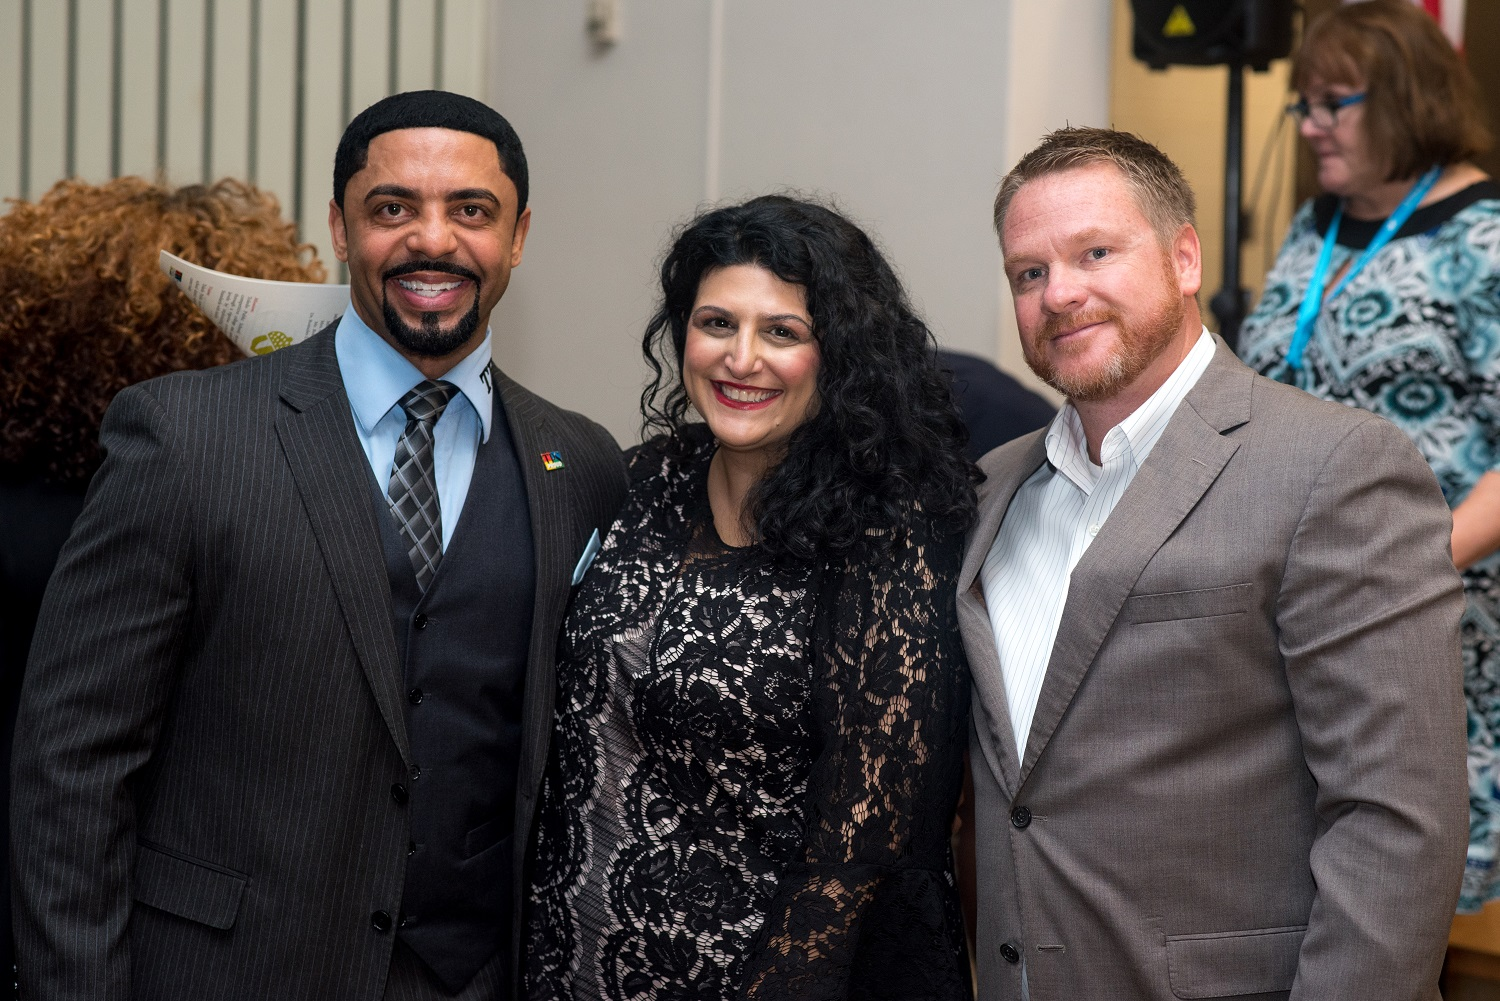 Pictured: Dr. Romules Durant, Superintendent/CEO, Toledo Public Schools, Mona Al-Hayani, and Kevin Dalton, President of the Toledo Federation of Teachers Photo Credit: Toledo Public Schools